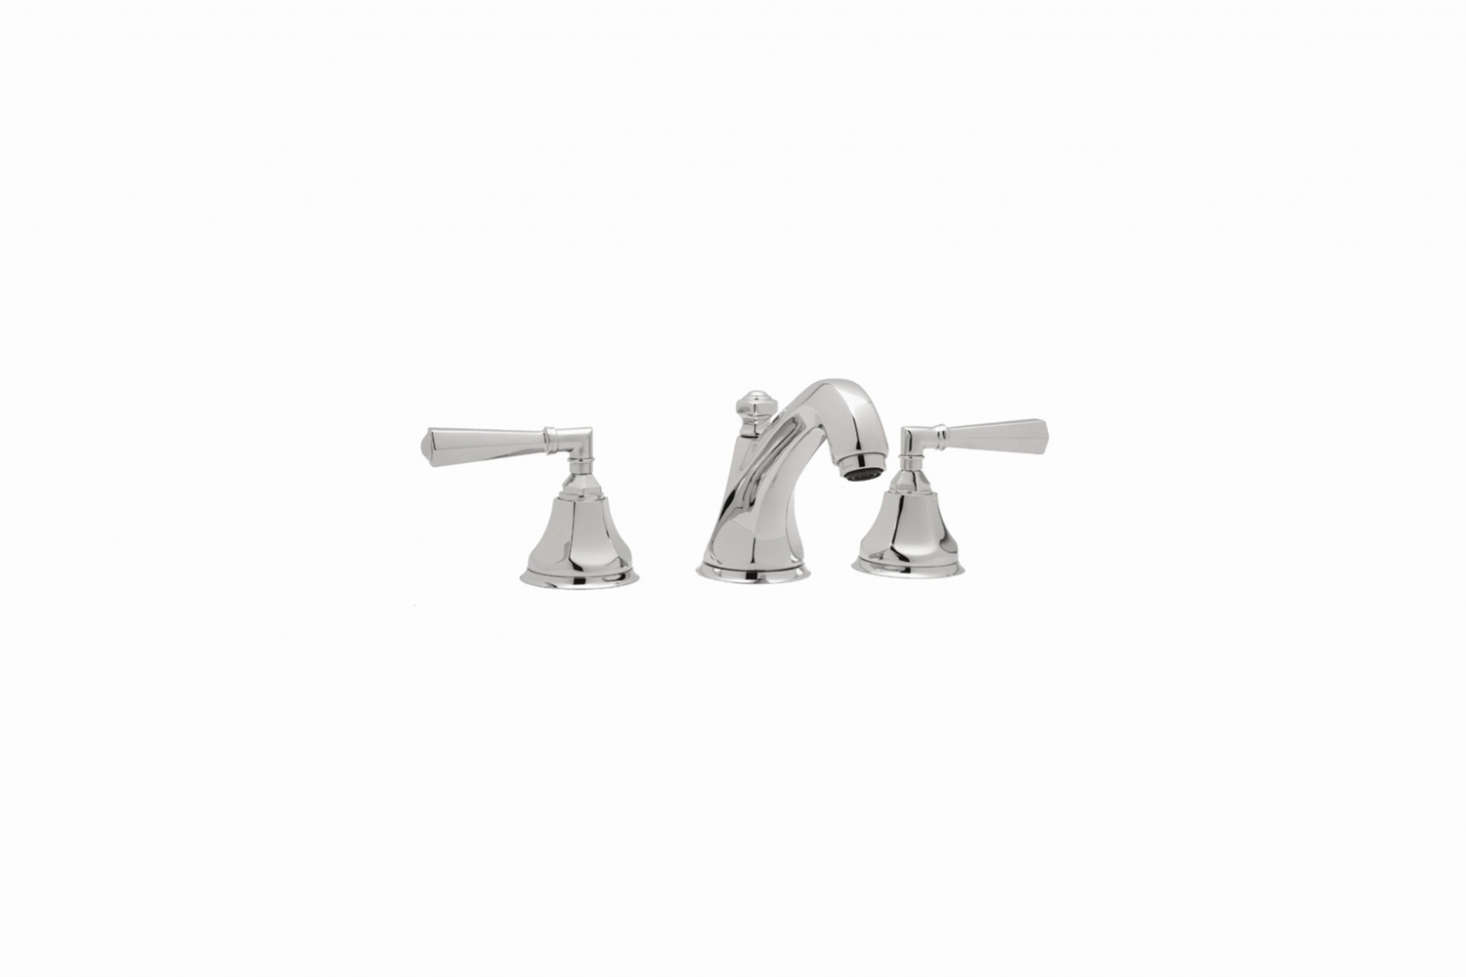 Etonnant The Rohl 3 Hole Widespread Lavatory Faucet In Chrome (shown), Nickel,